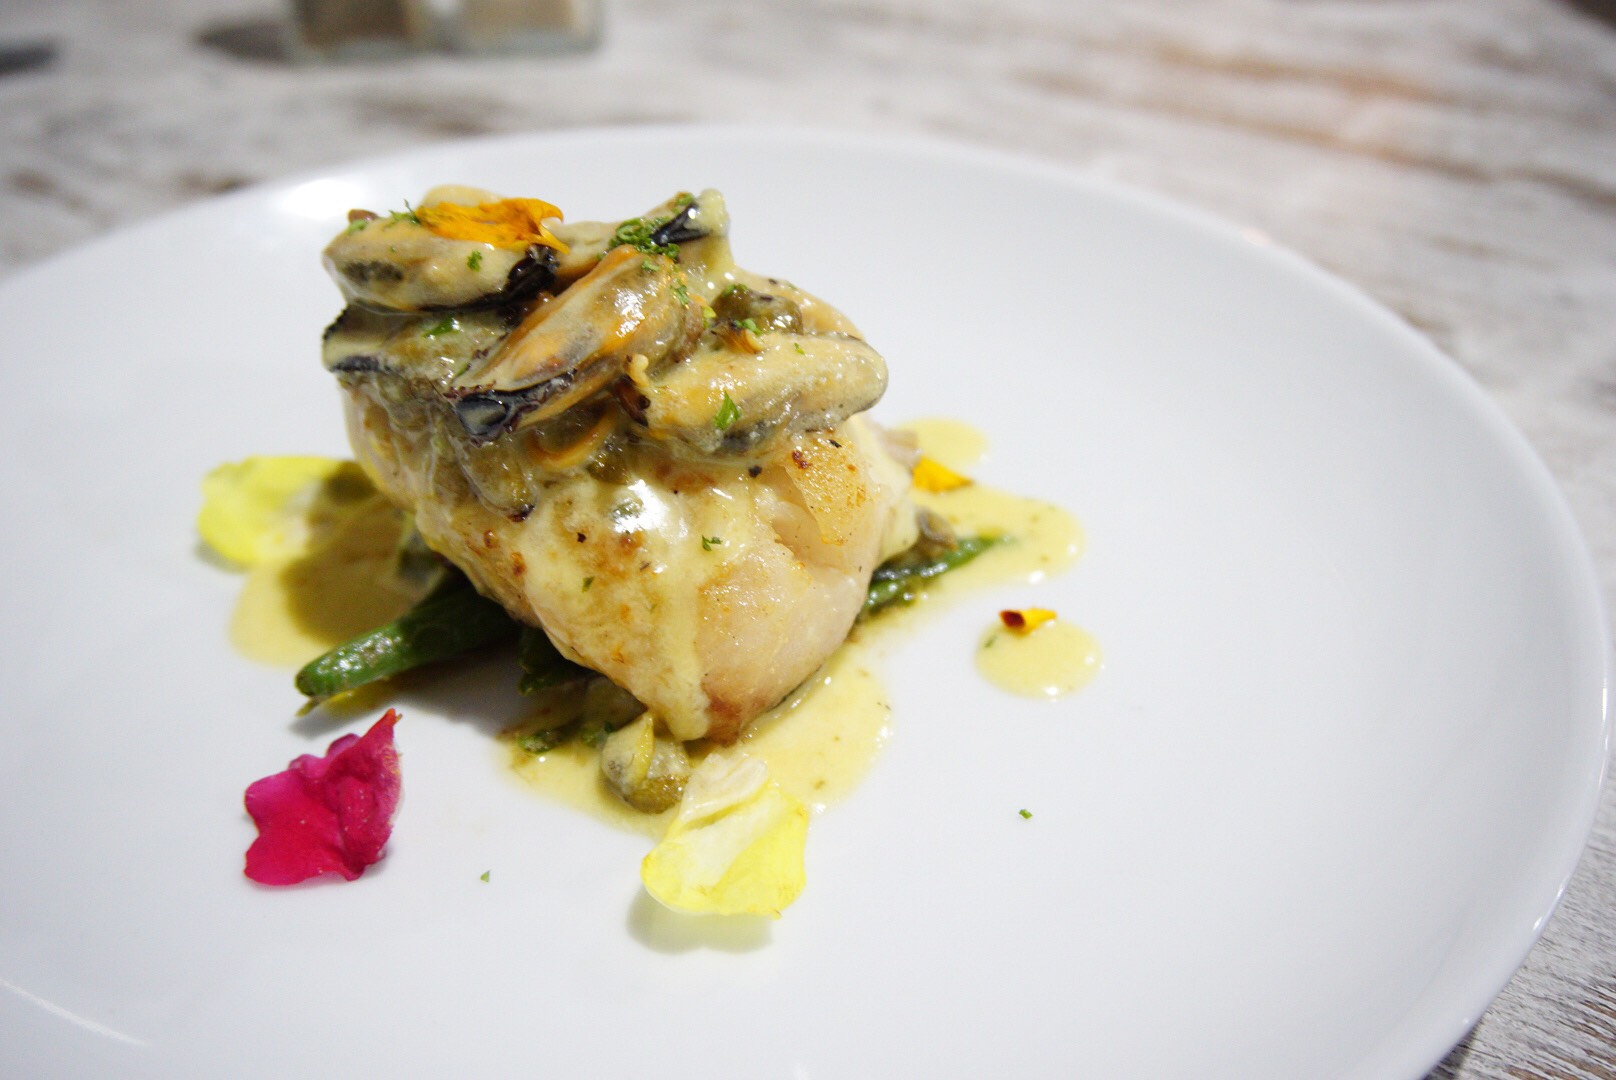 The Special of the night at the Pickled Herring, Two Rocks: threadfin salmon